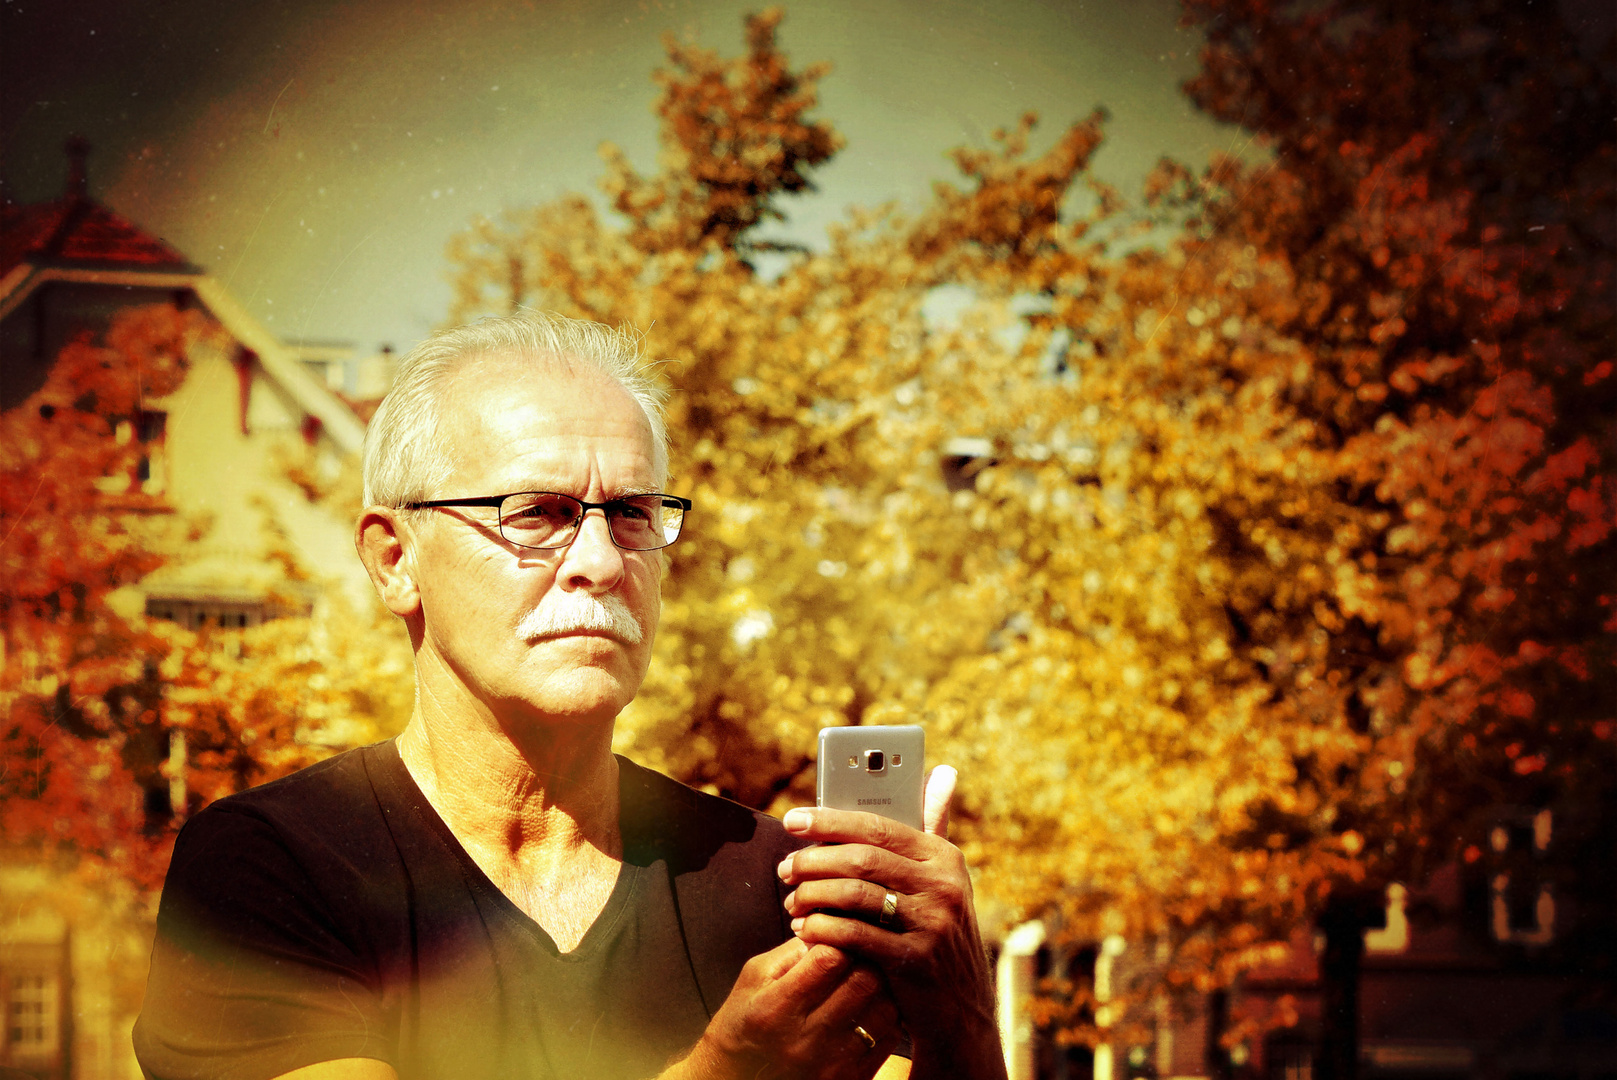 ... man with mobile phone